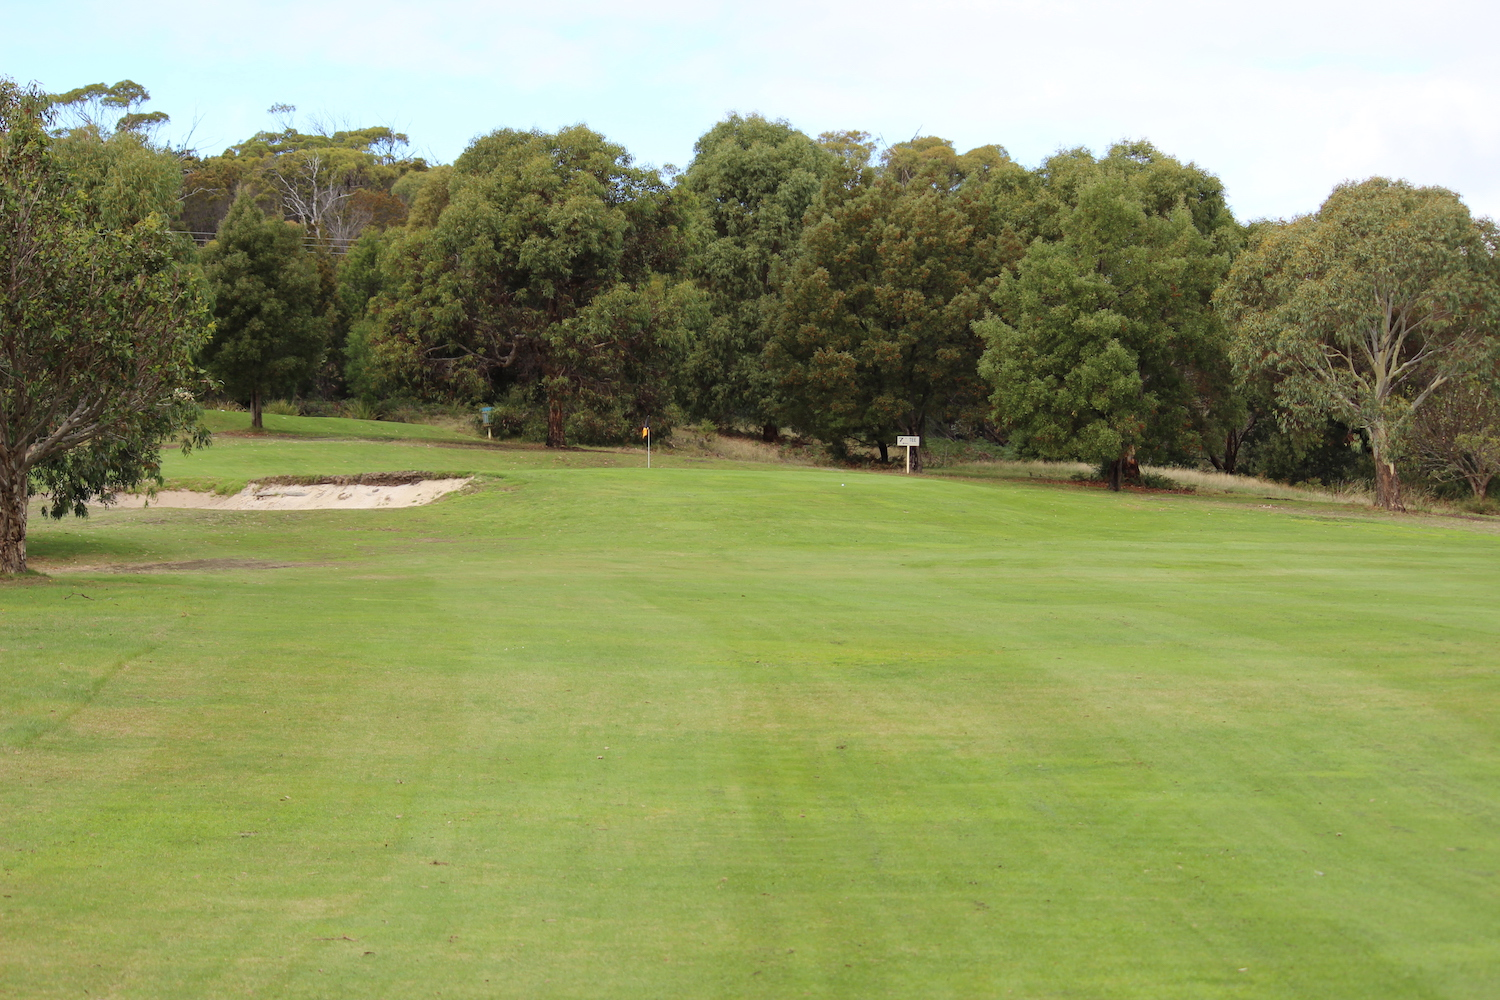 Hole 4    A challenging hole going up hill to a split level green cut into the hill side which is protected with a deep bunker on the left front.    Men: 375 metres, Par 4, Stroke Index 3/21   Ladies: 315 metres, Par 4, Stroke Index 3/21